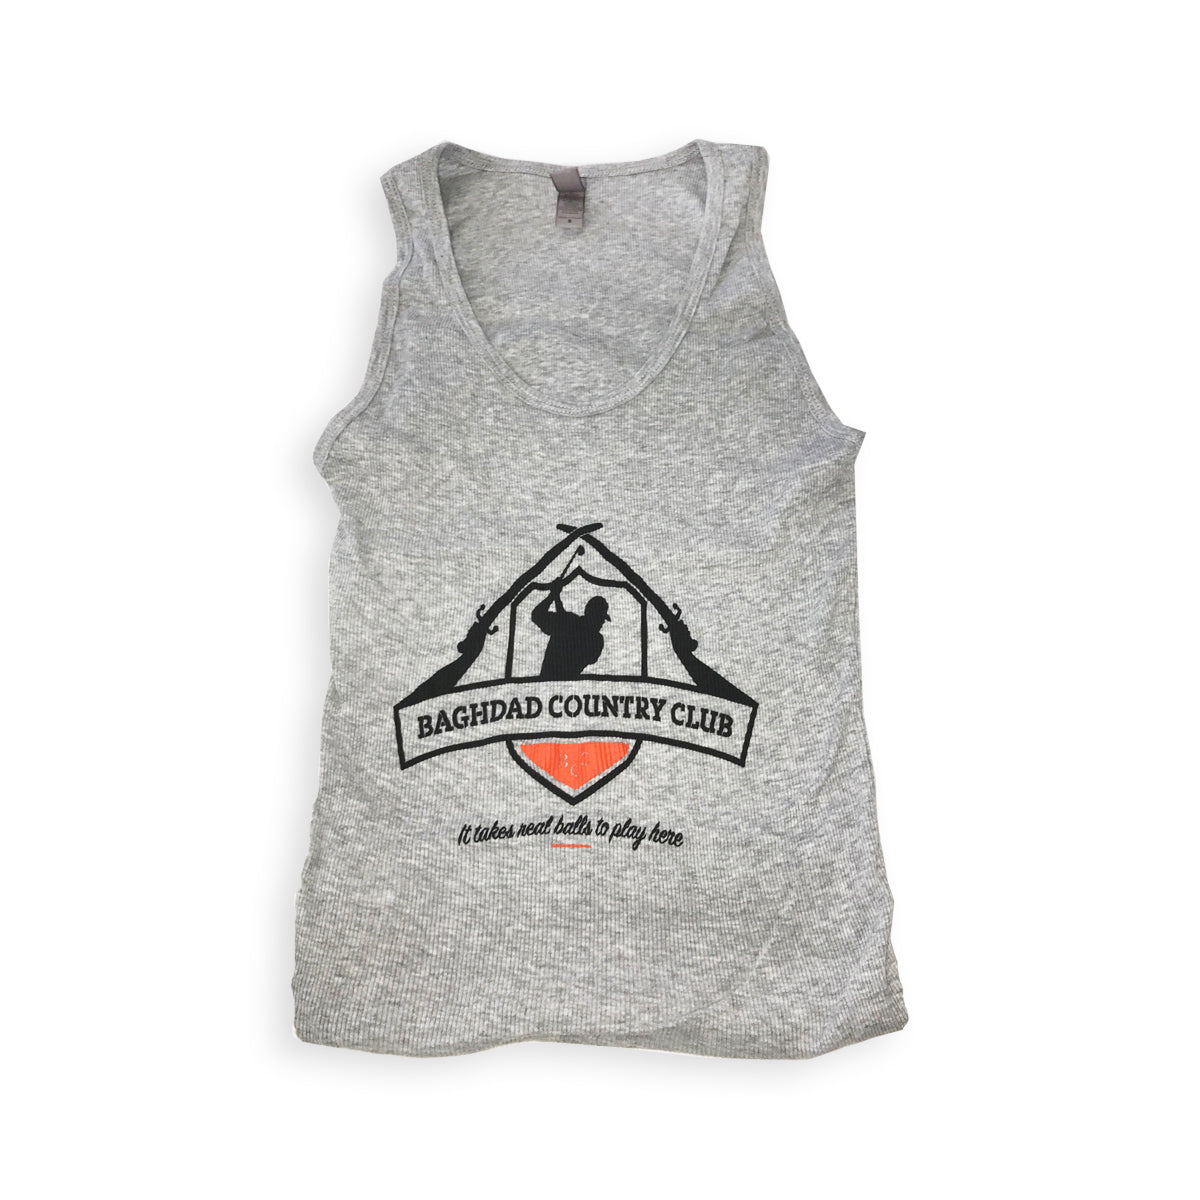 Ladies Tank Top Grey